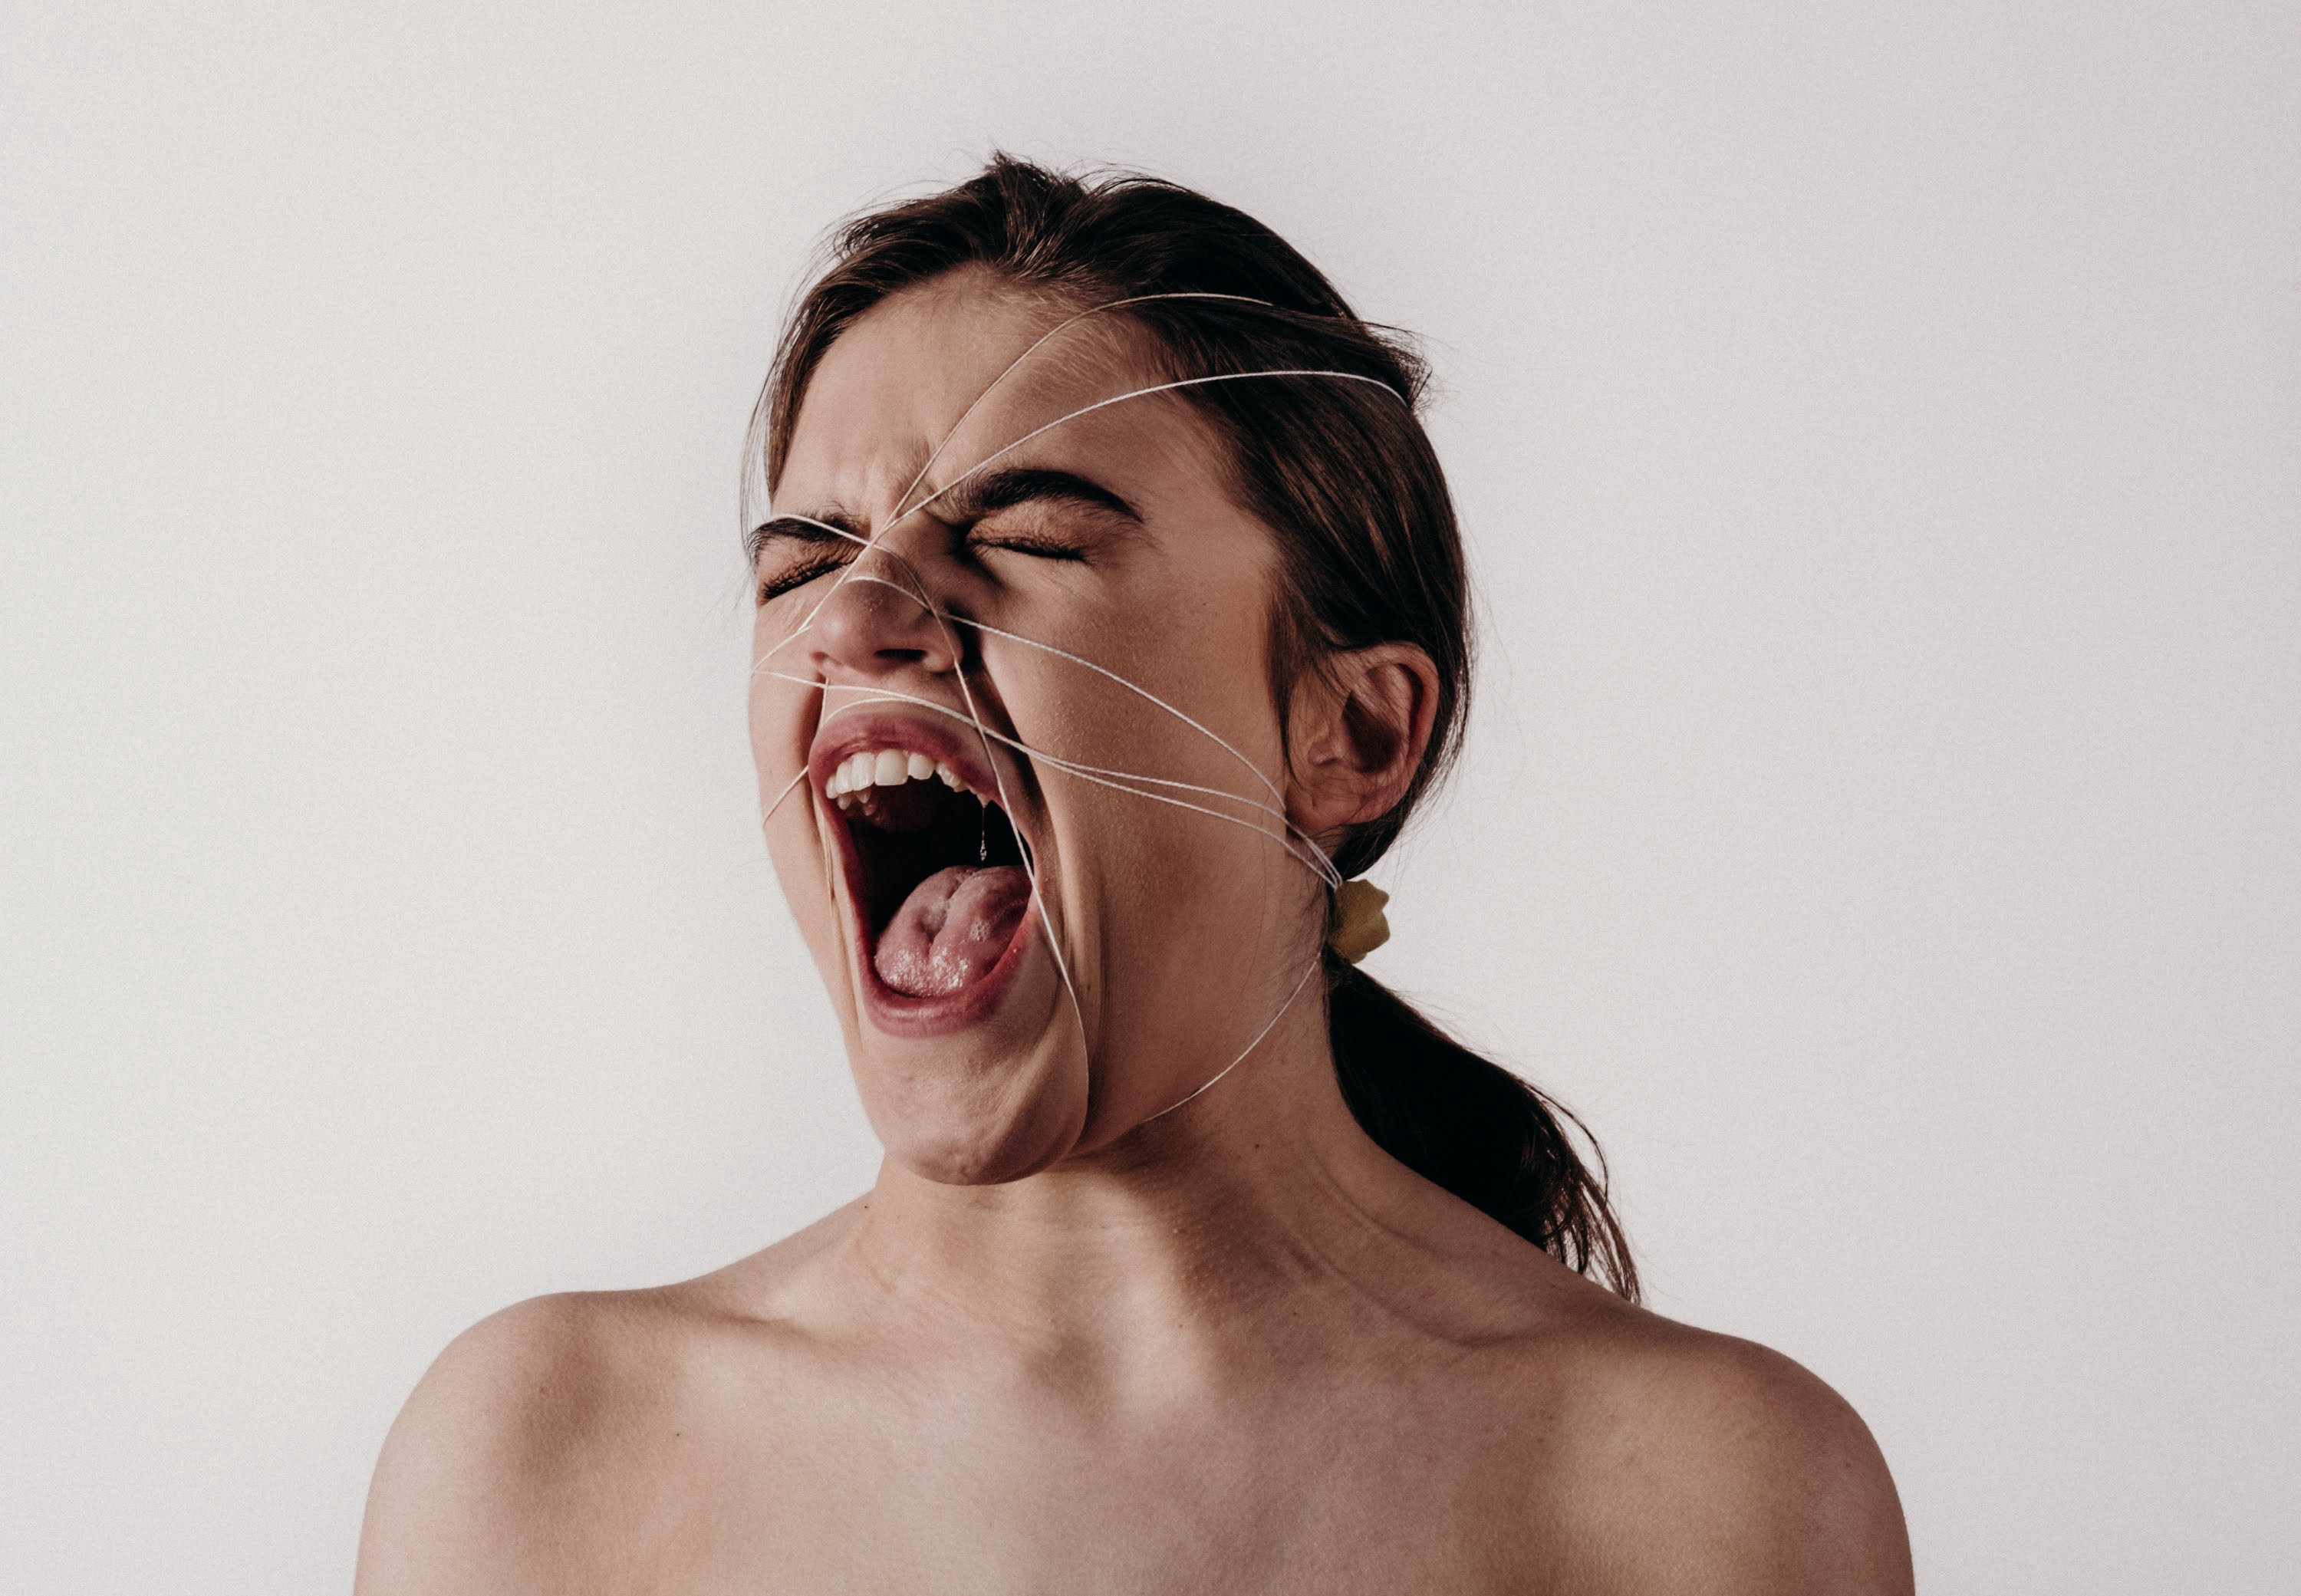 Lady with something tied around her face, naked and screaming.